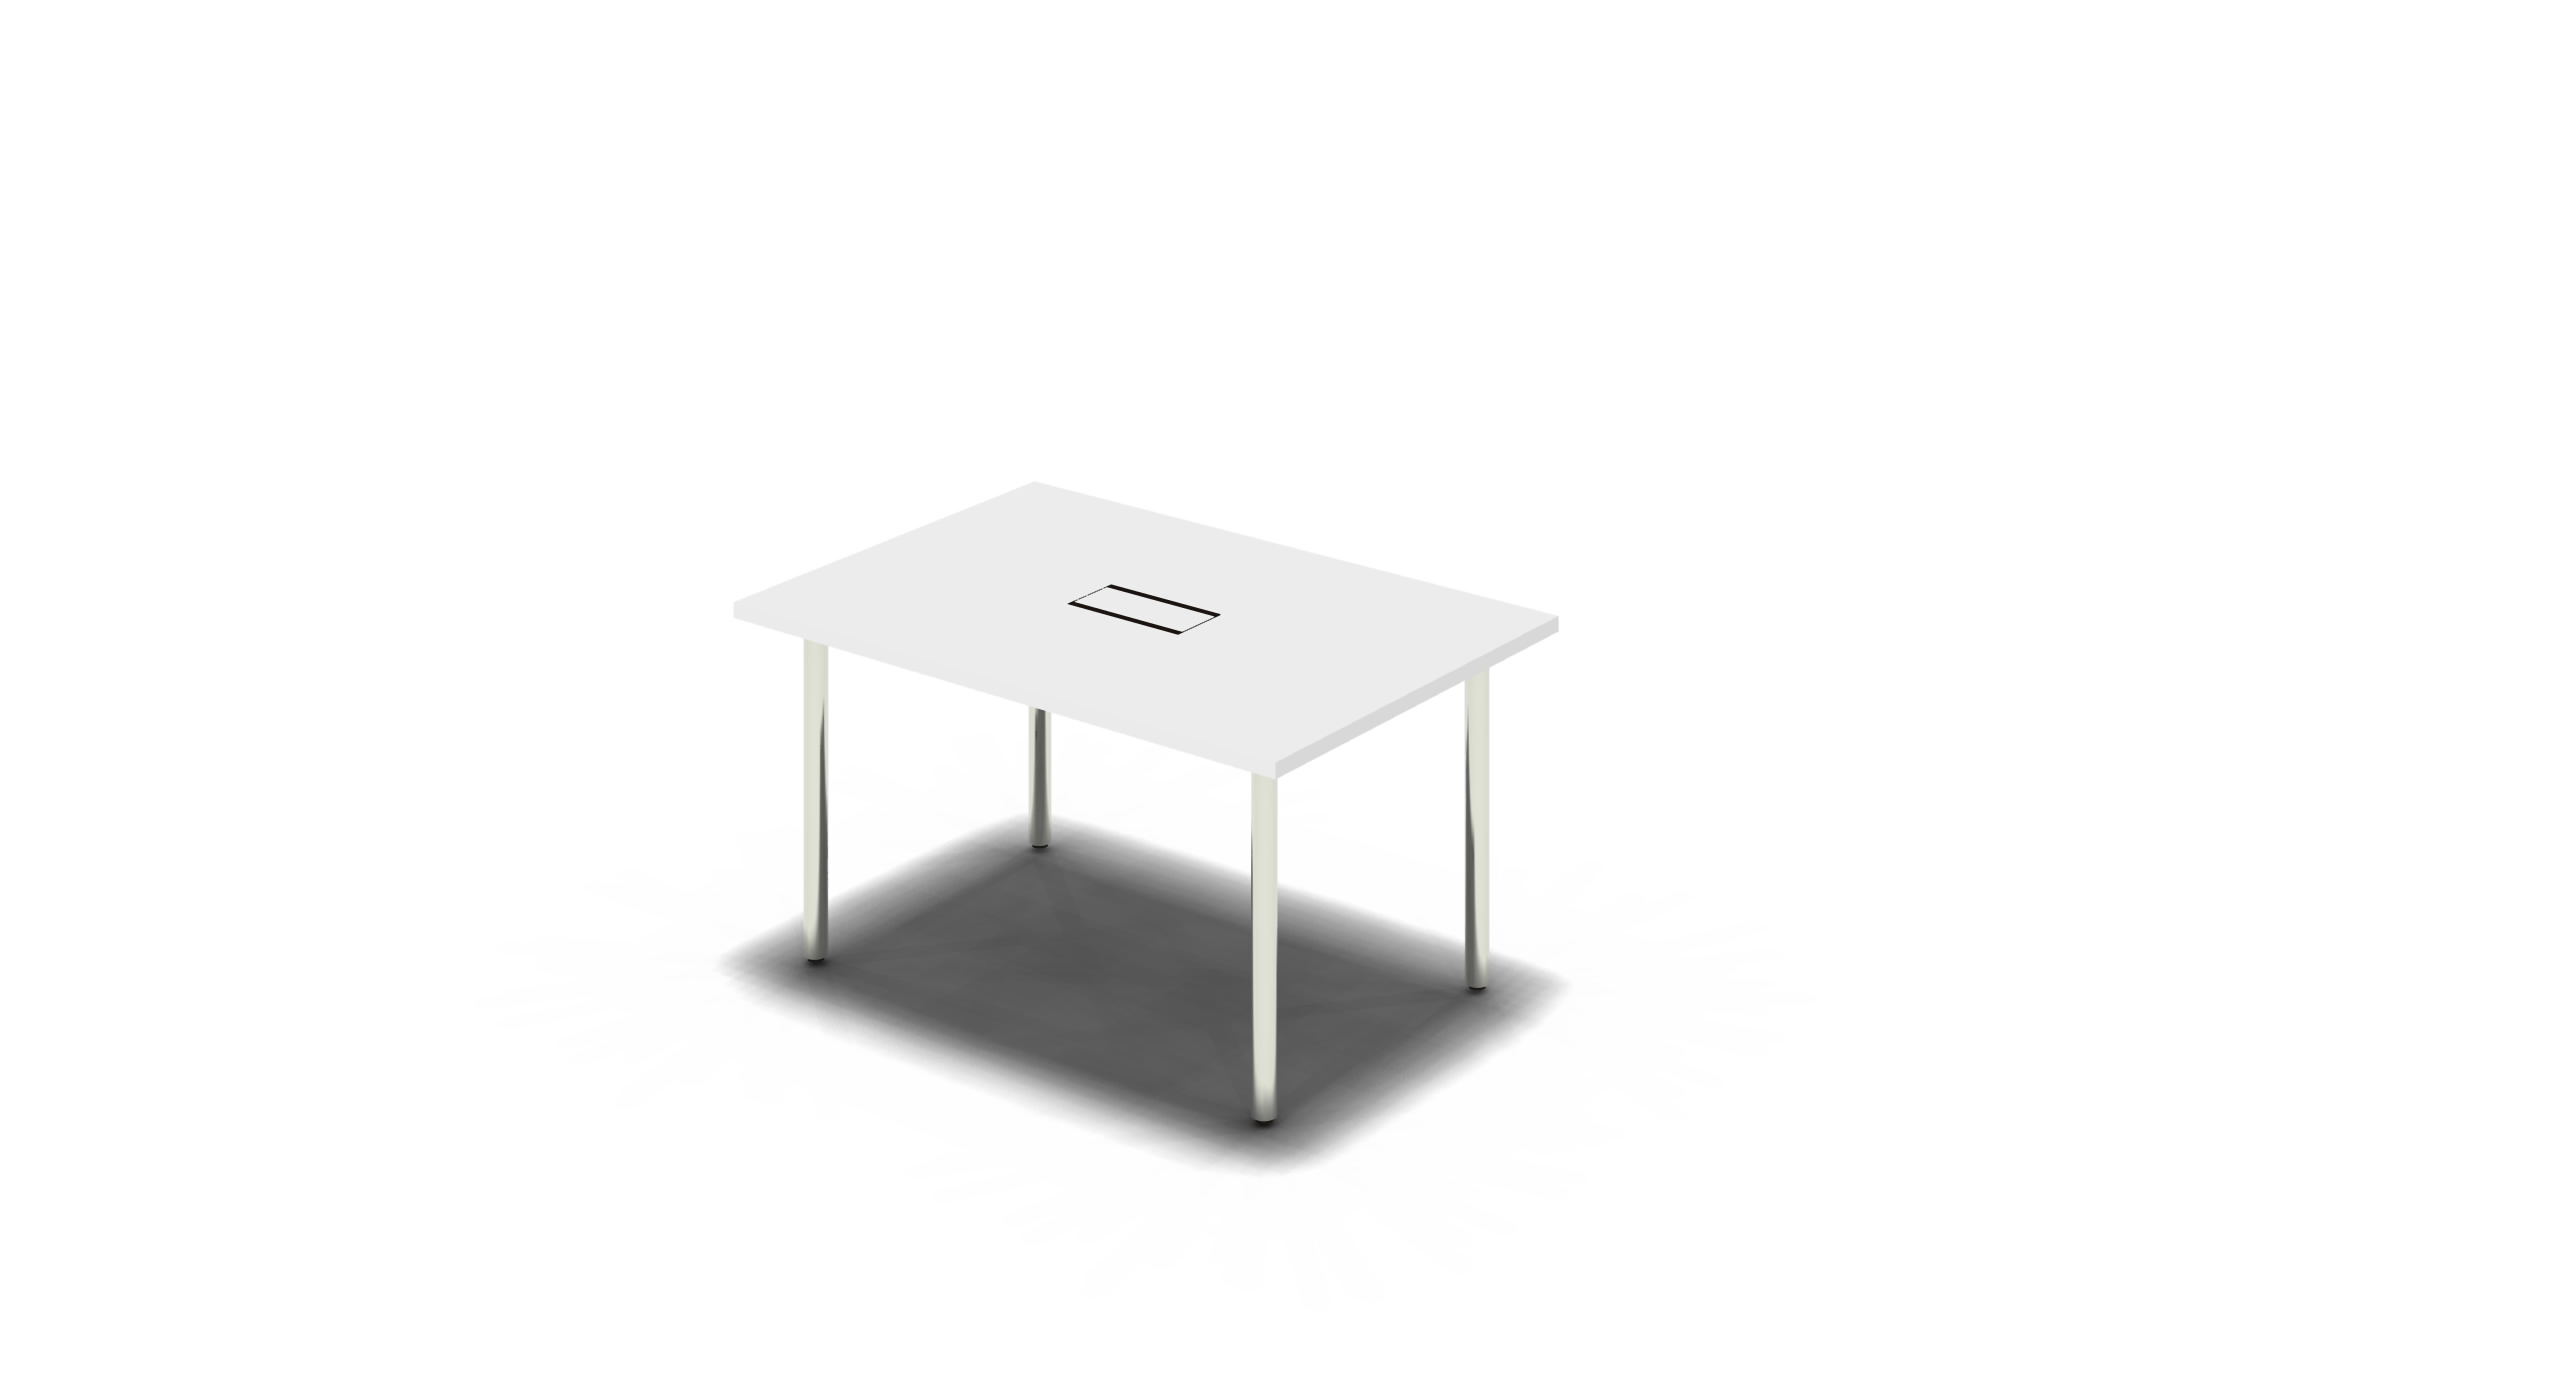 Table_Round_1200x800_Chrome_White_withOption